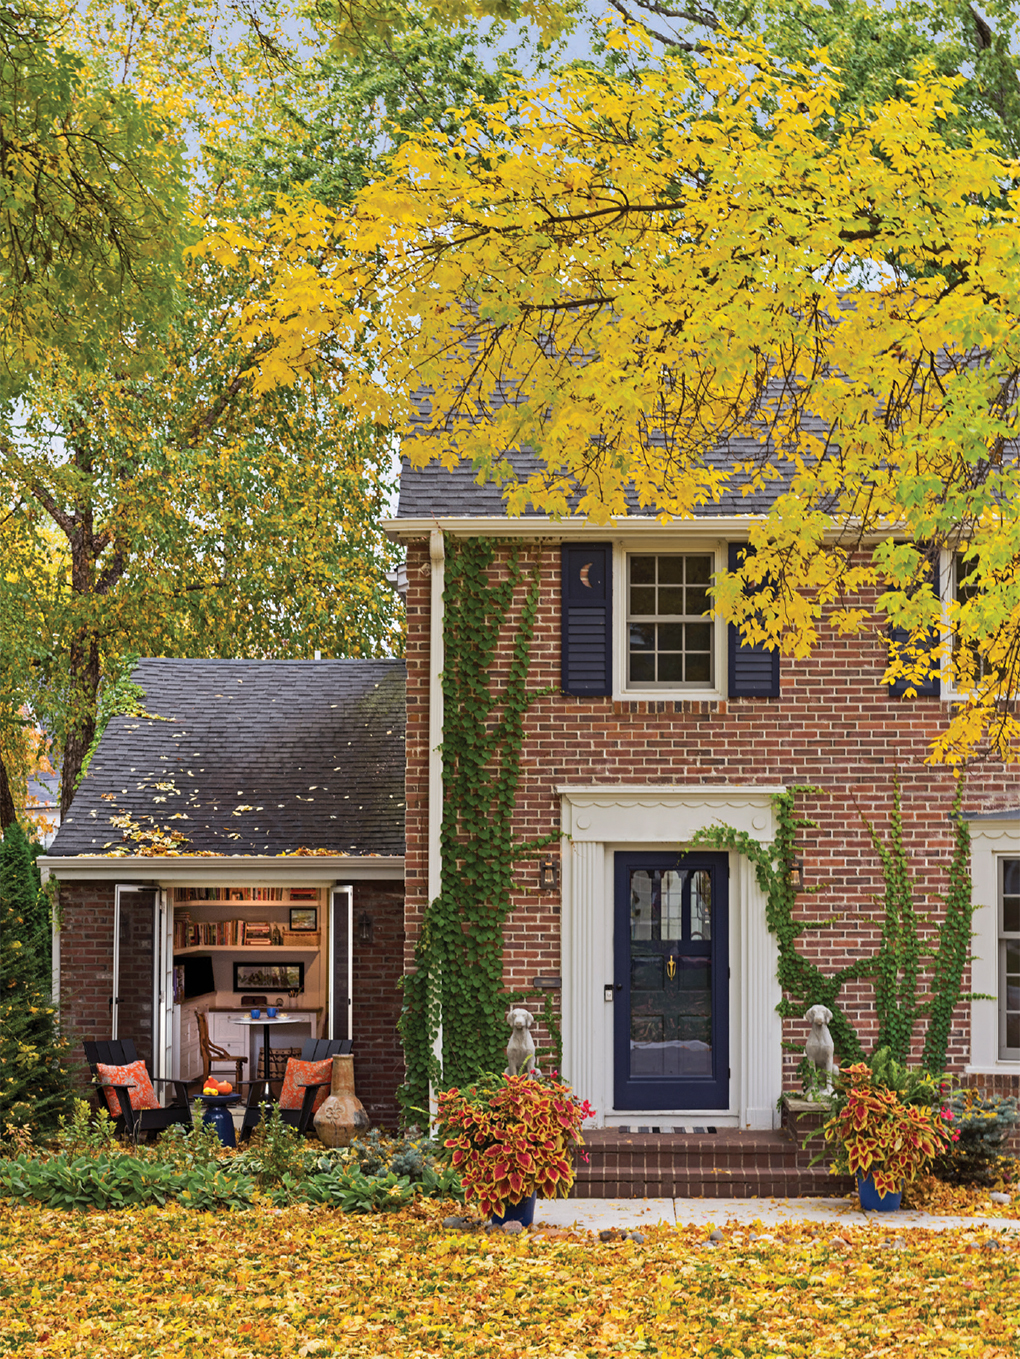 The original attached garage is now an office with a charming patio.